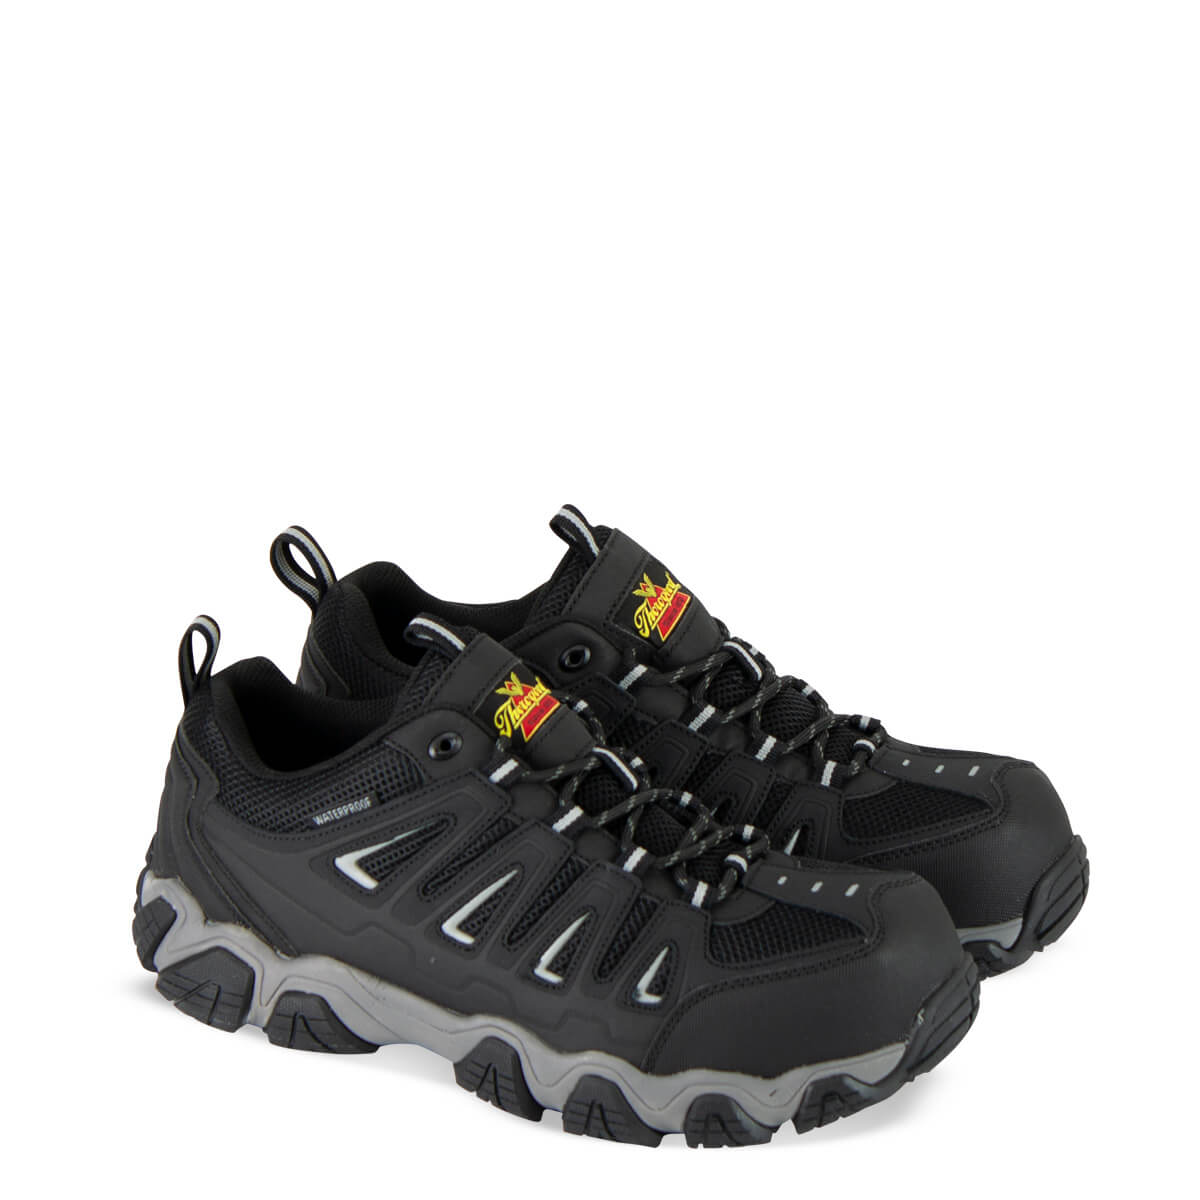 crosstrex-oxford-black-grey-waterproof-safety-toe-804-6293_1